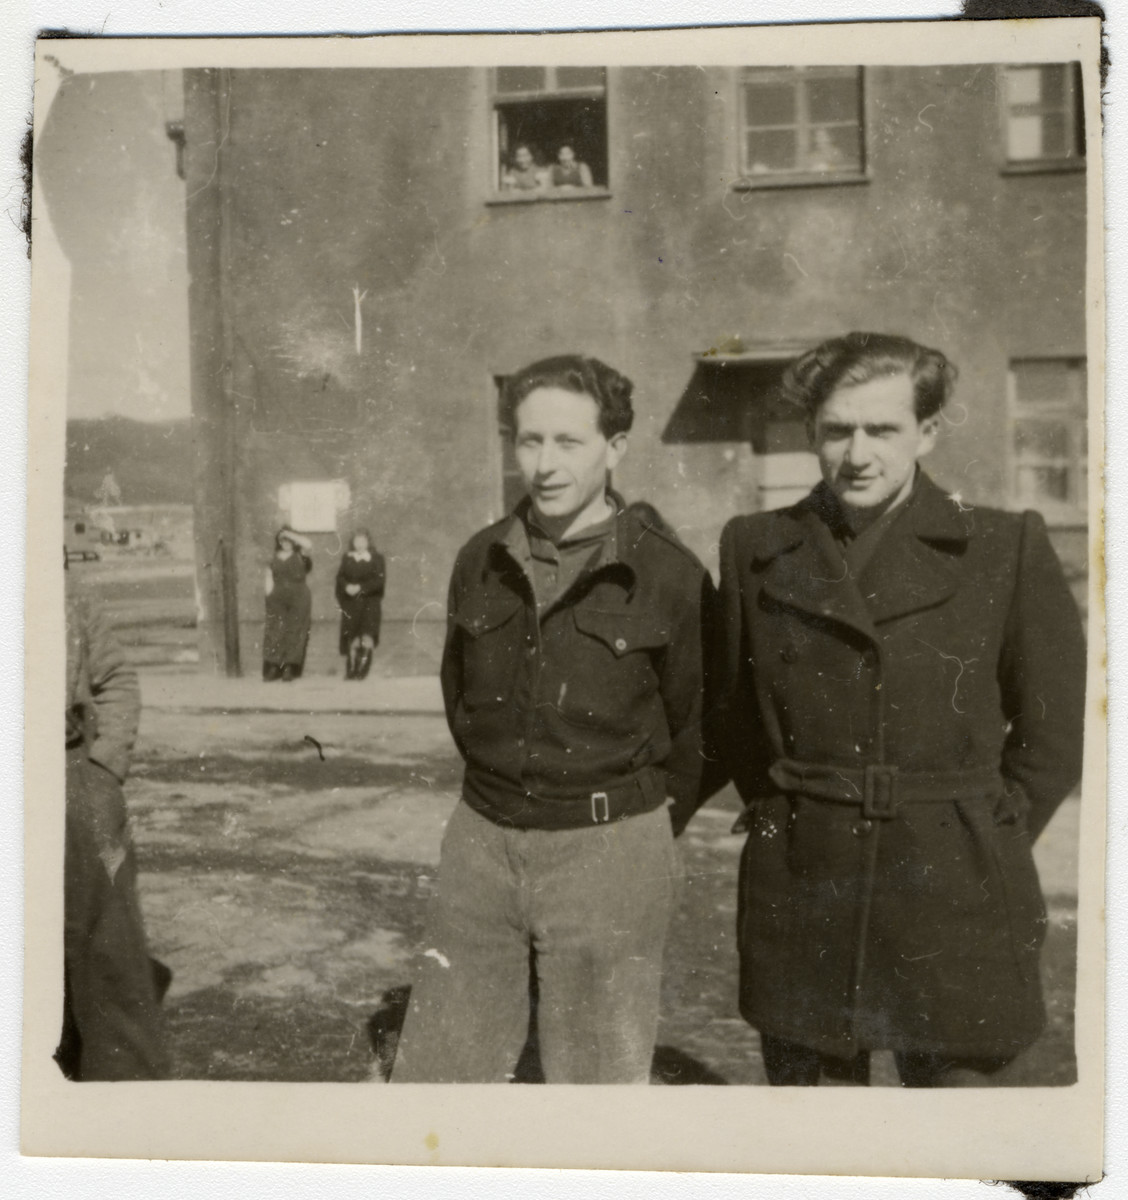 Willy Bogler (right) and a friend pose in front of the entrance to their home at the kibbutz hachshara in Eschwege.